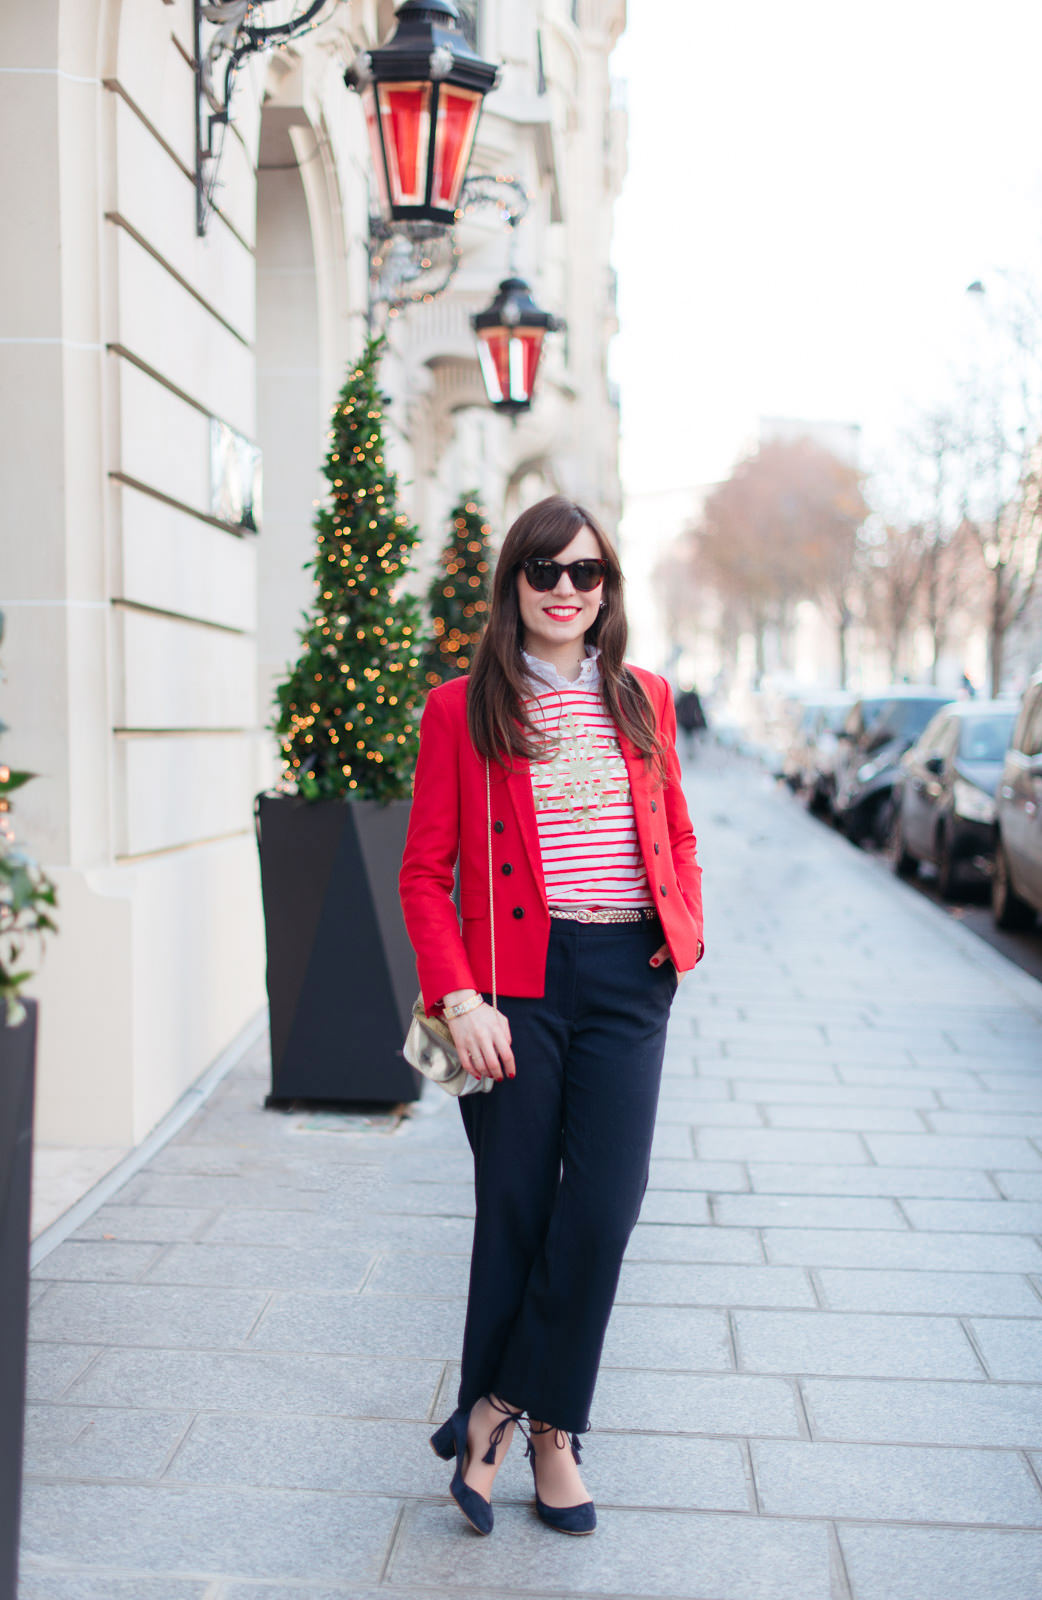 Blog-Mode-And-The-City-Looks-Mariniere-de-Noel-4